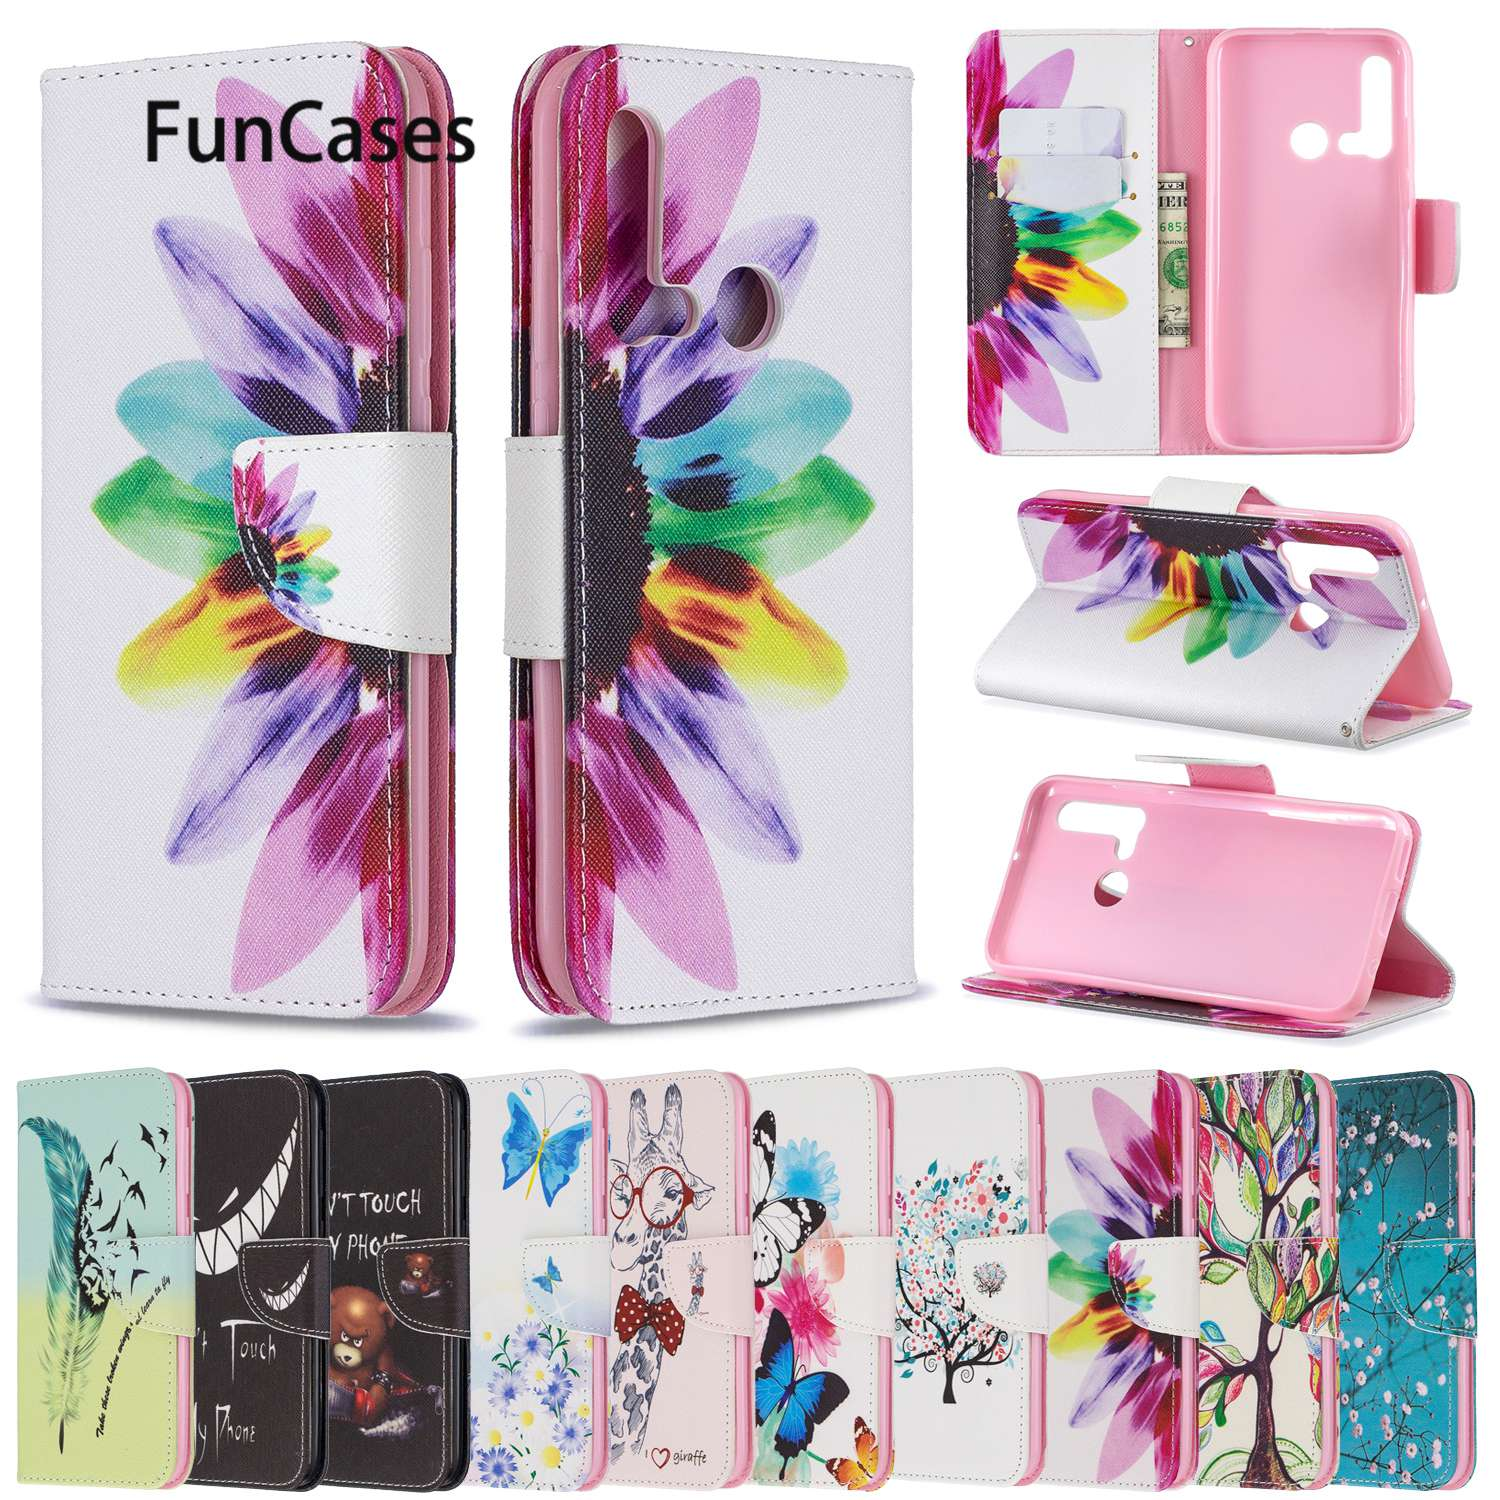 Case For Huawei Mate 30 Pro P20 Lite 2019 P30 Honor 20i 9X Pro Y7 Prime Y9 Nova 5i Mate 30 8A 8S Y6 4E P Smart Z 10i Y5 Plus(China)